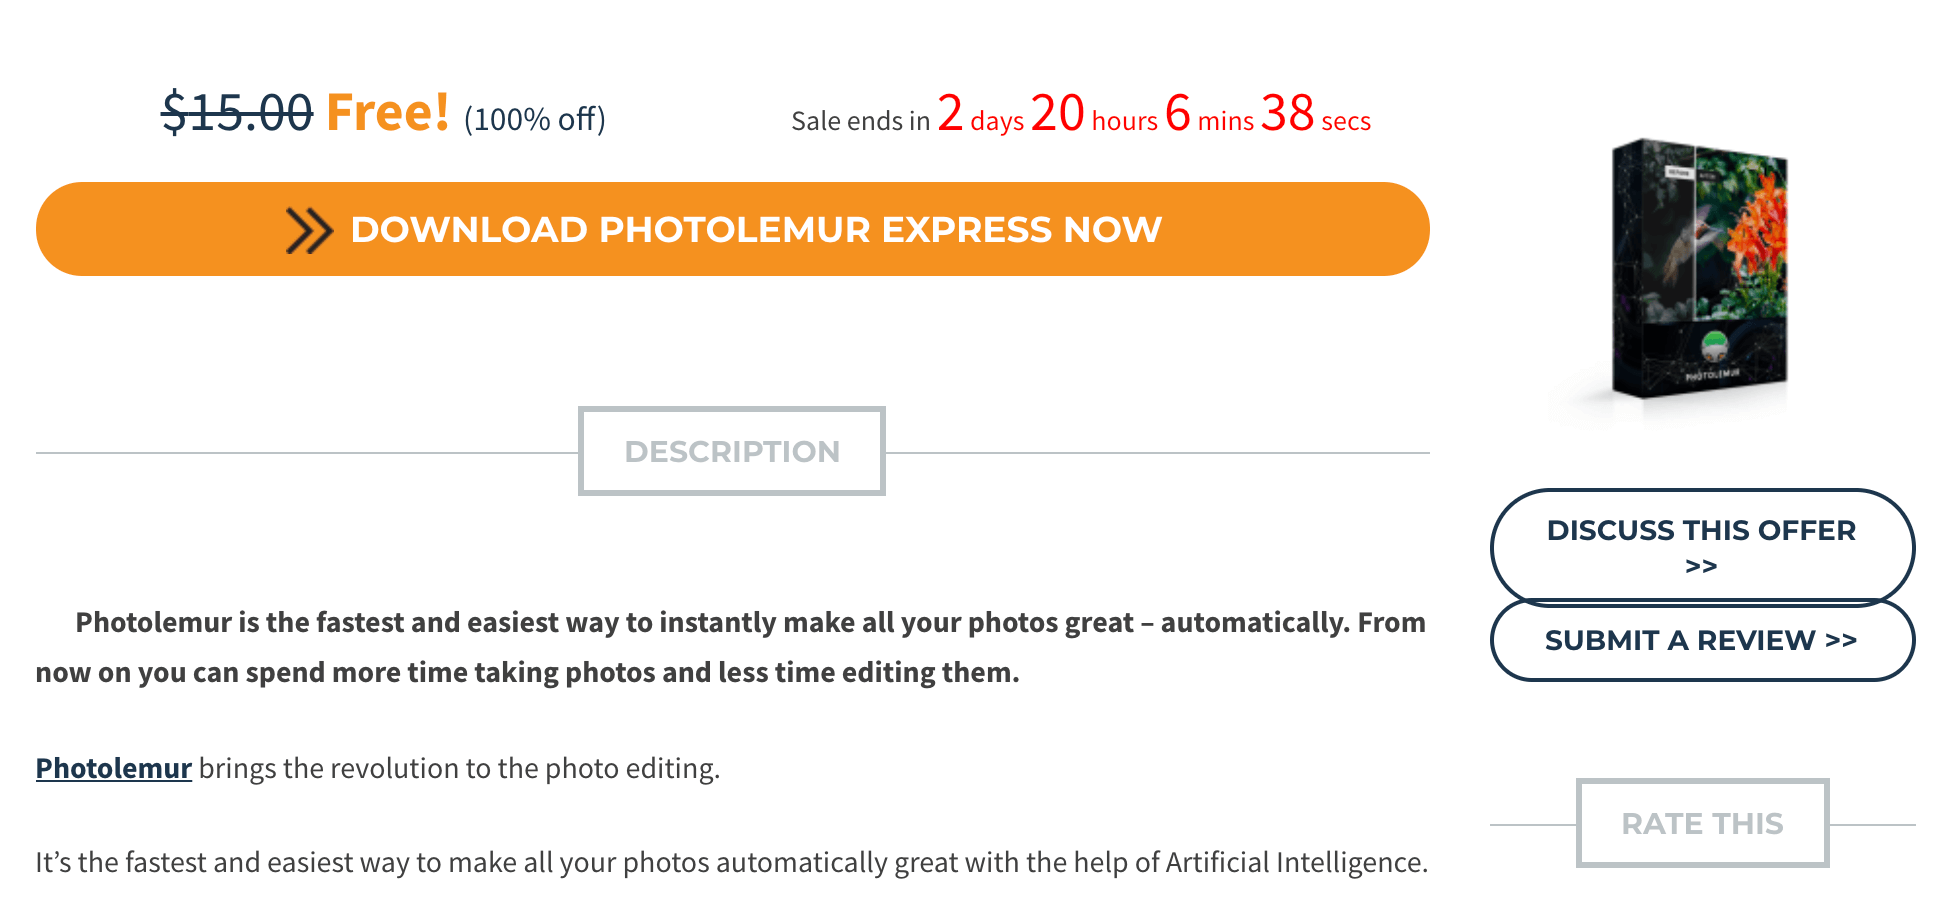 Photolemur Express 限免下載1